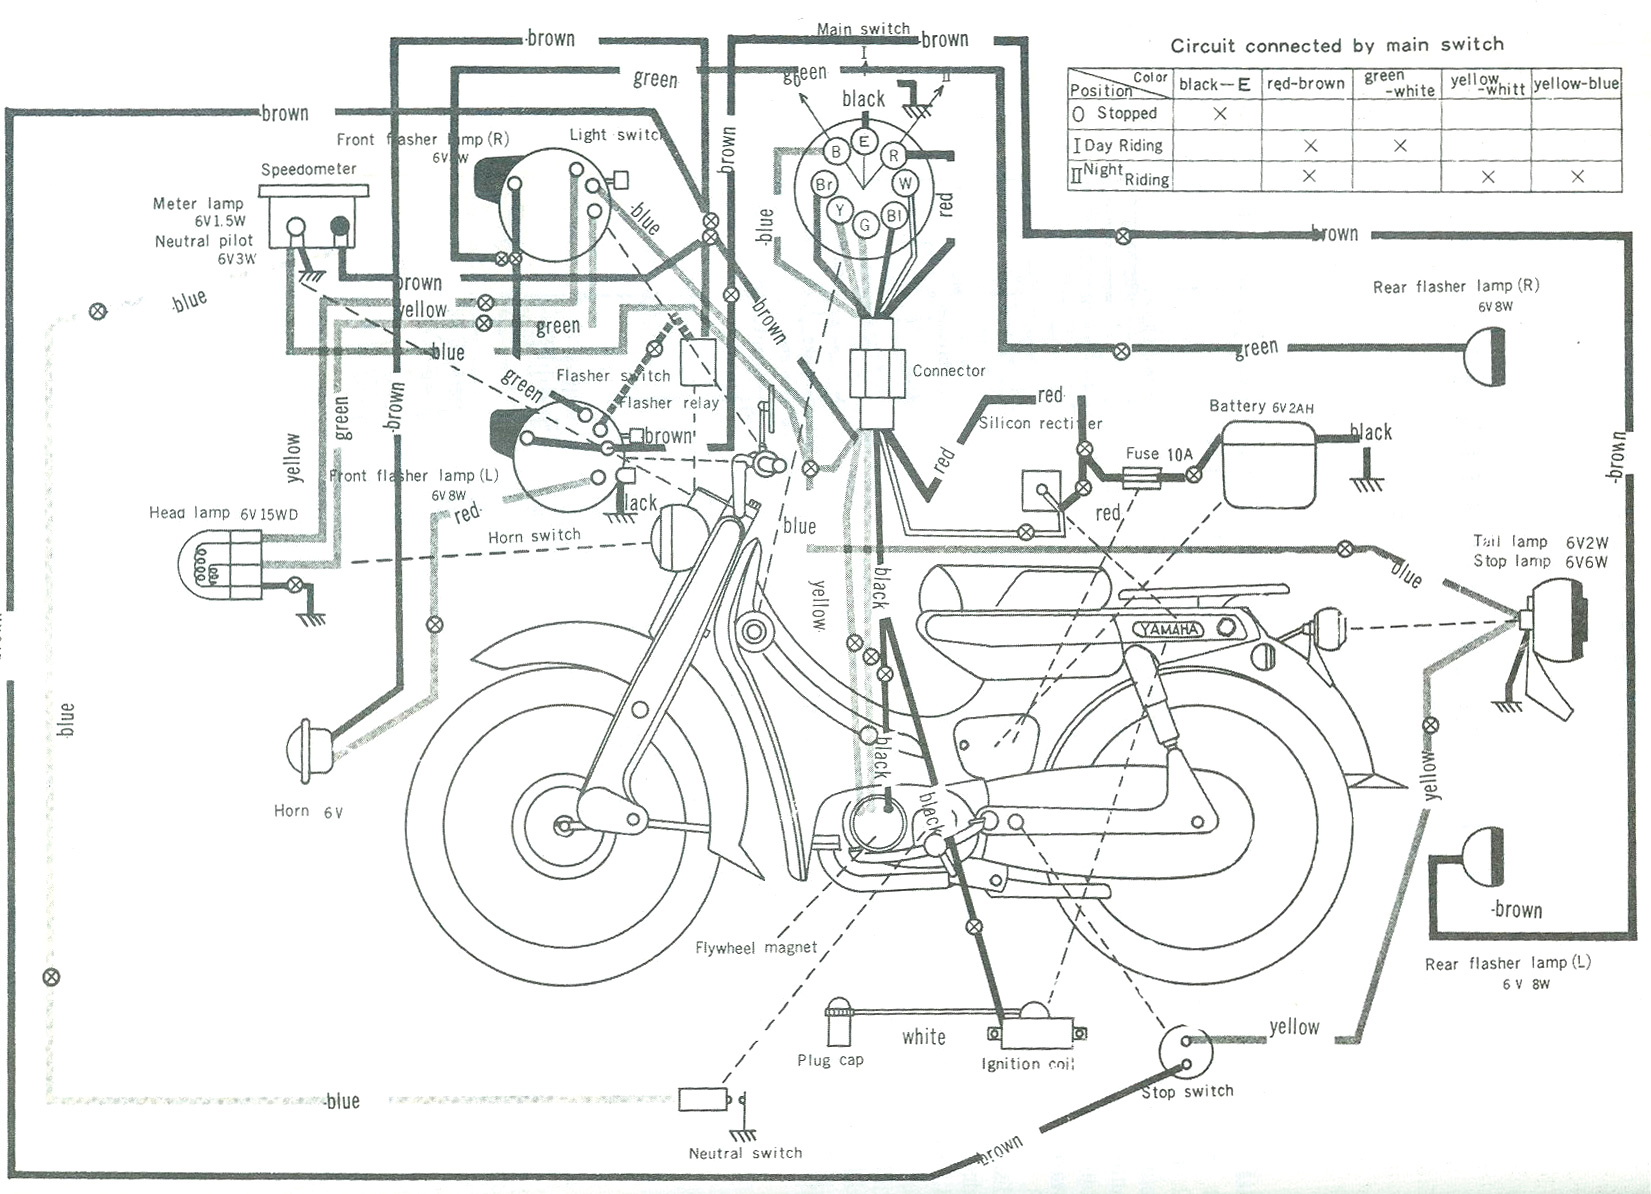 u5e_wiring u5e] motorcycle wiring schematics diagram yamaha vino 125 wiring diagram at bayanpartner.co